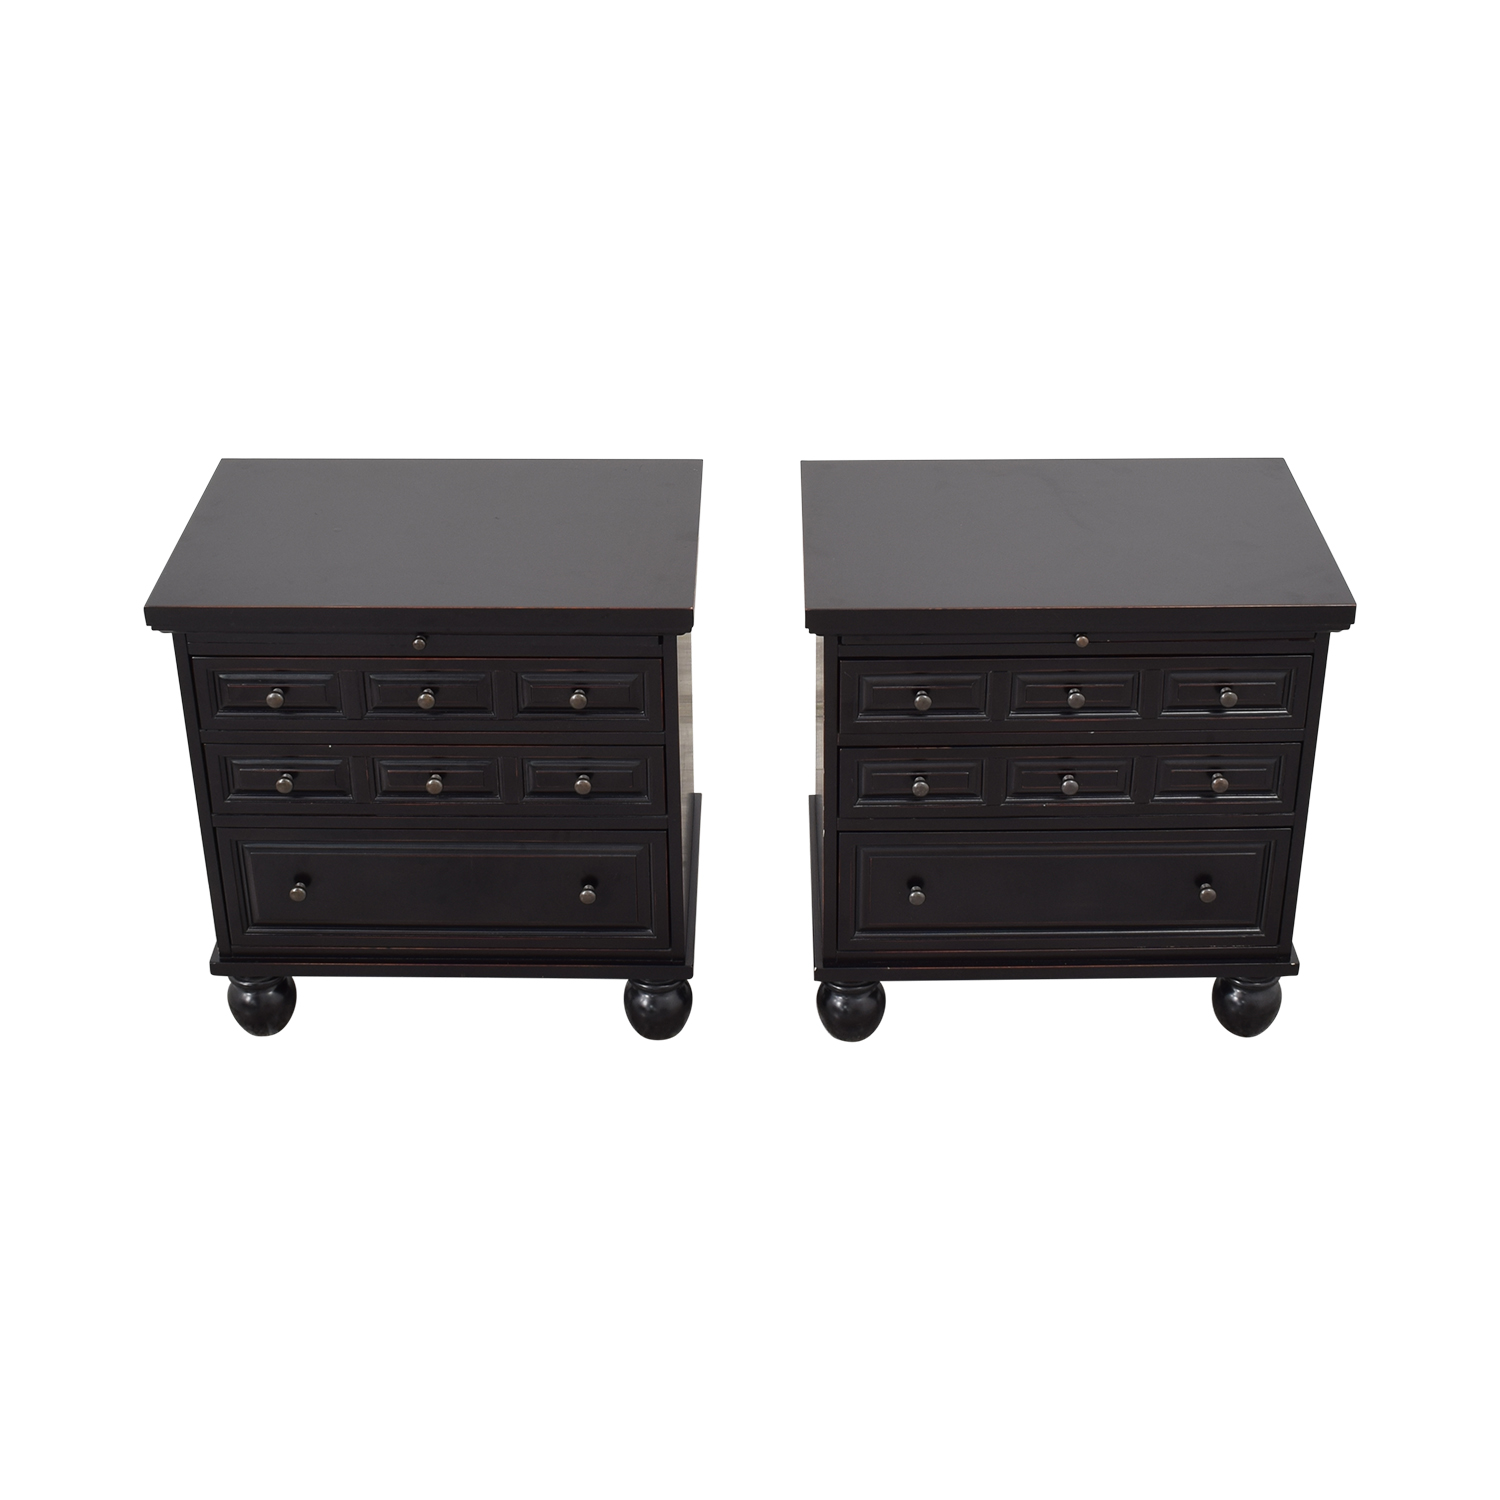 Pier 1 Pier 1 Nightstand Chests pa